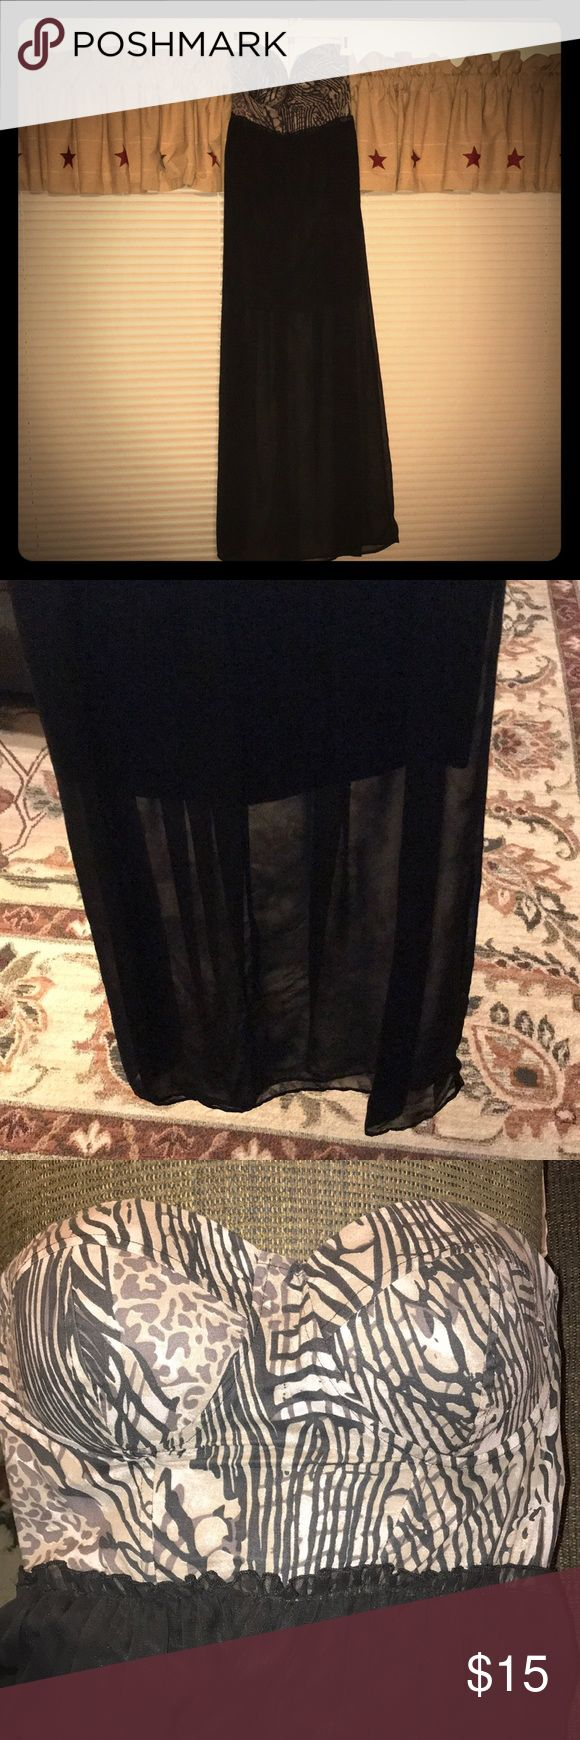 Strapless Long Dress Animal print top and black bottom long dress for sale! Bottom has a sheer overlay. This dress is so fun! Charlotte Russe Dresses Strapless